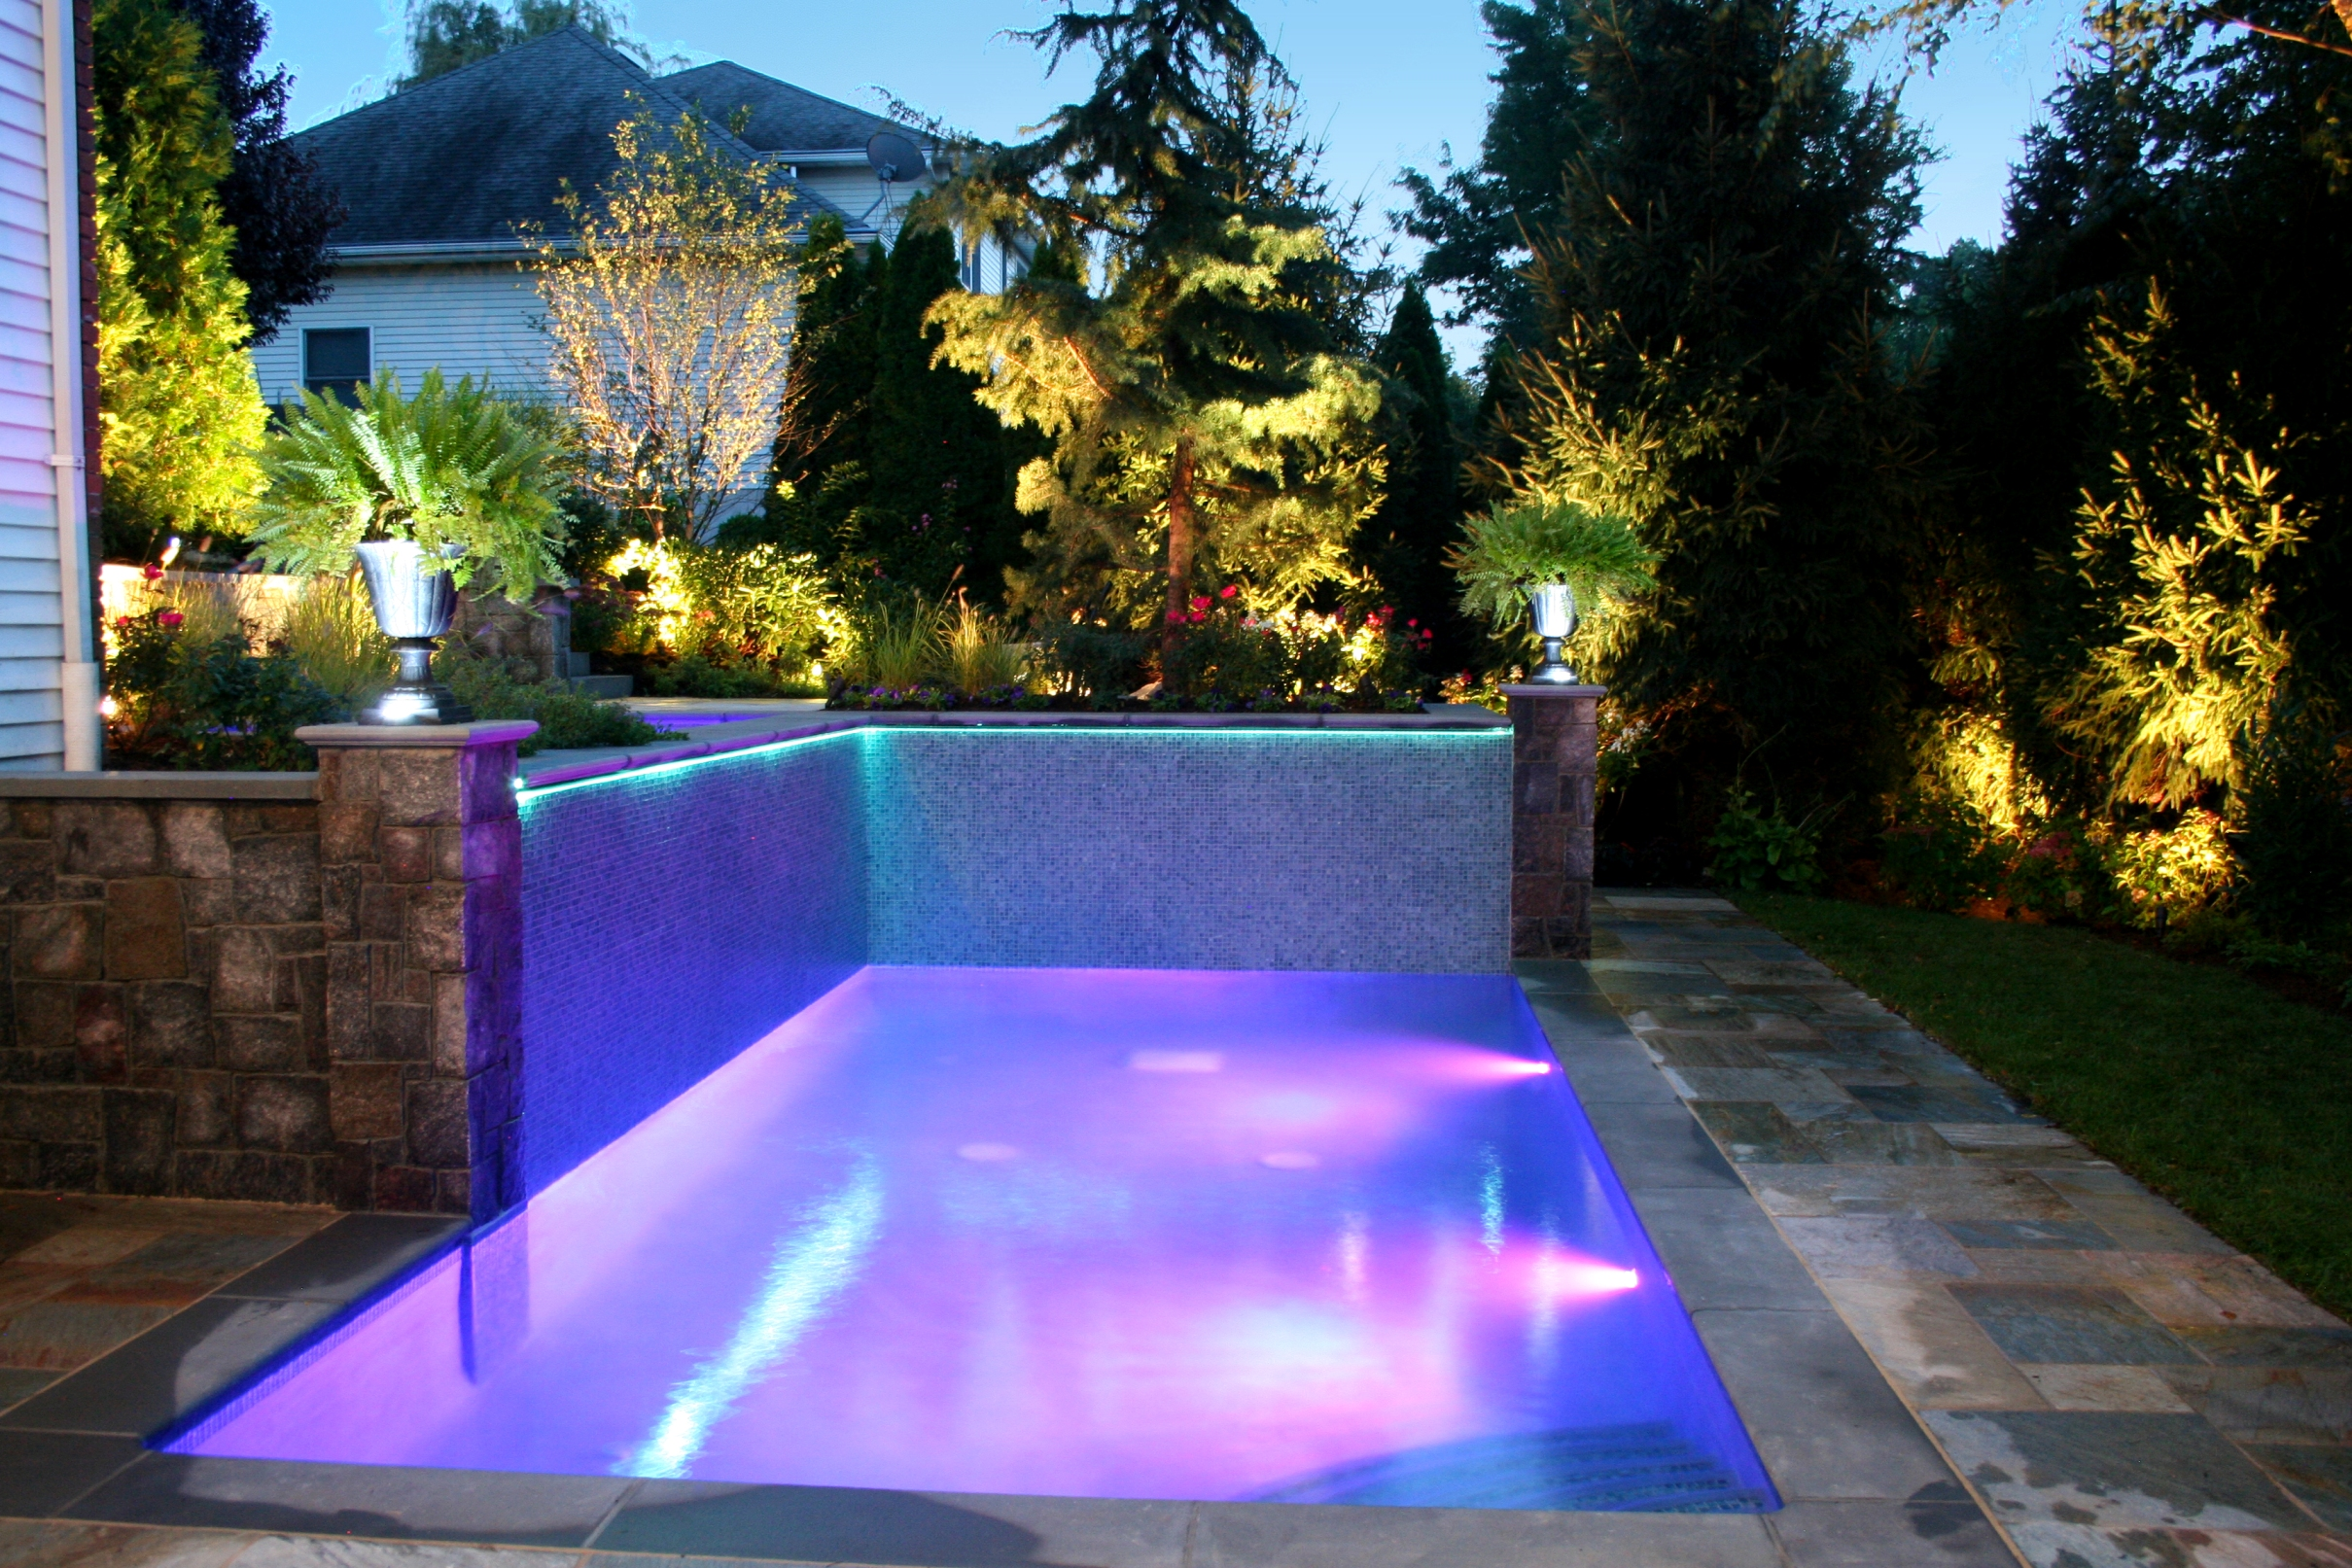 New jersey in ground pool takes international pool awards for Design your own inground pool